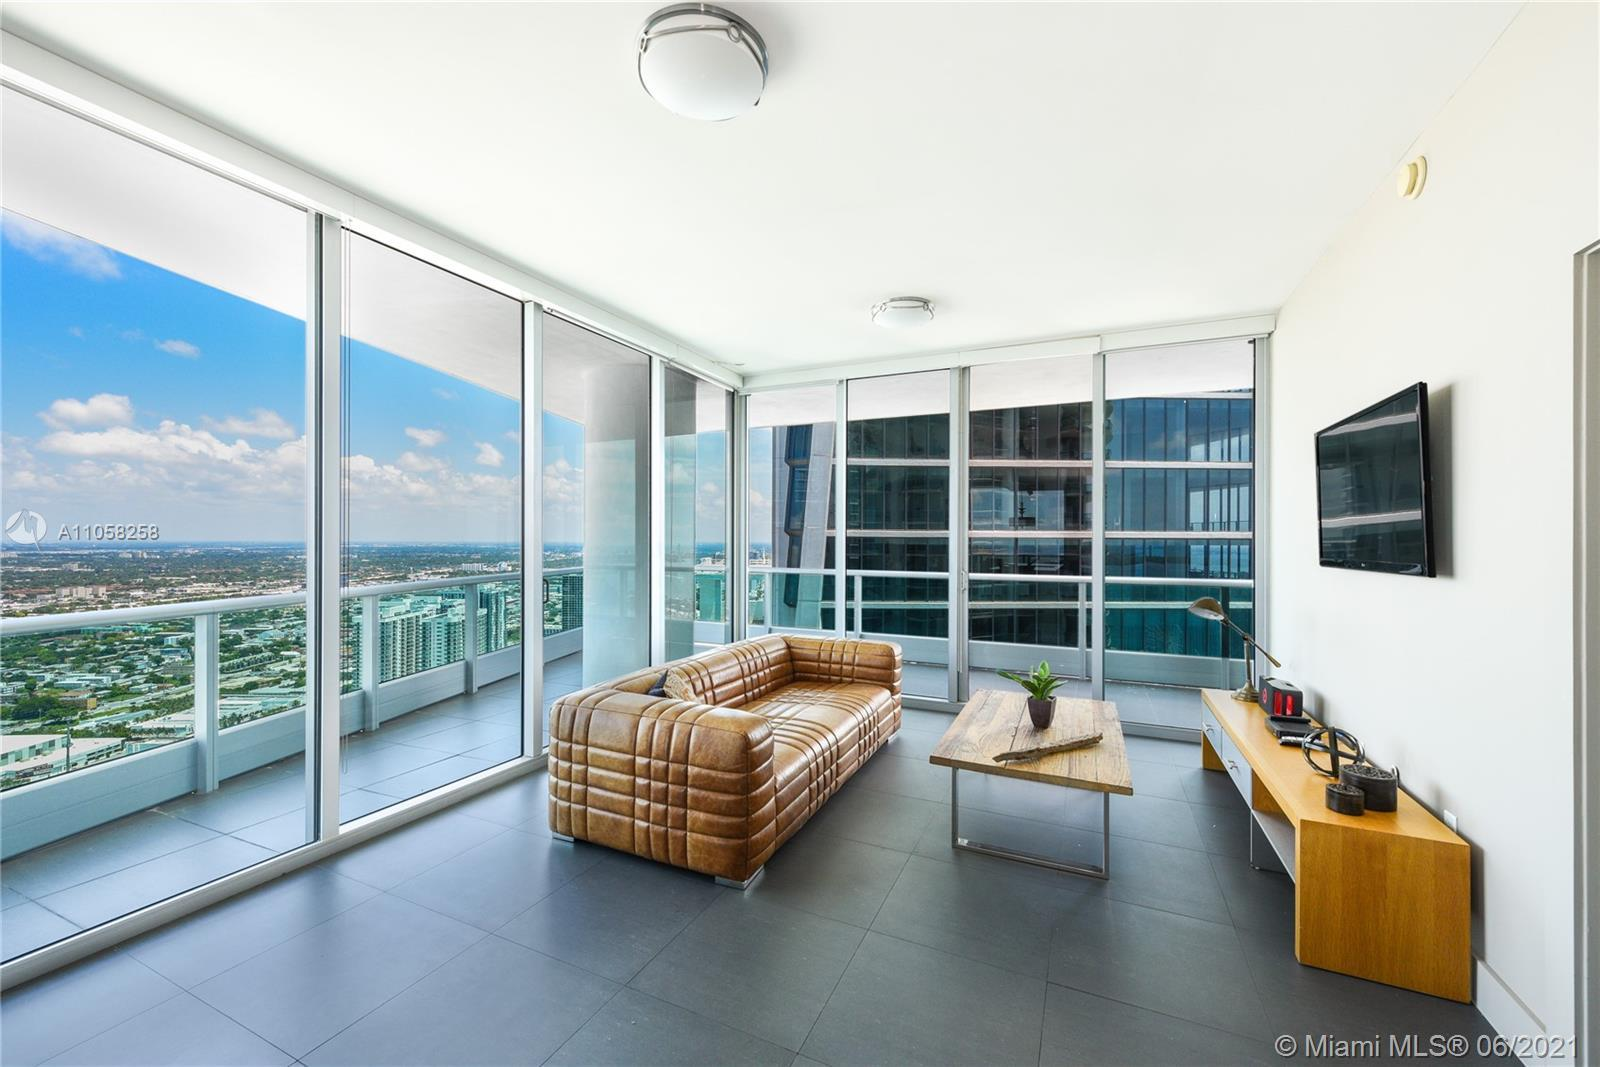 Stunning 180 degree views of Biscayne Bay, Ocean & Miami Skyline. Large 2 terraces overlooking sunse